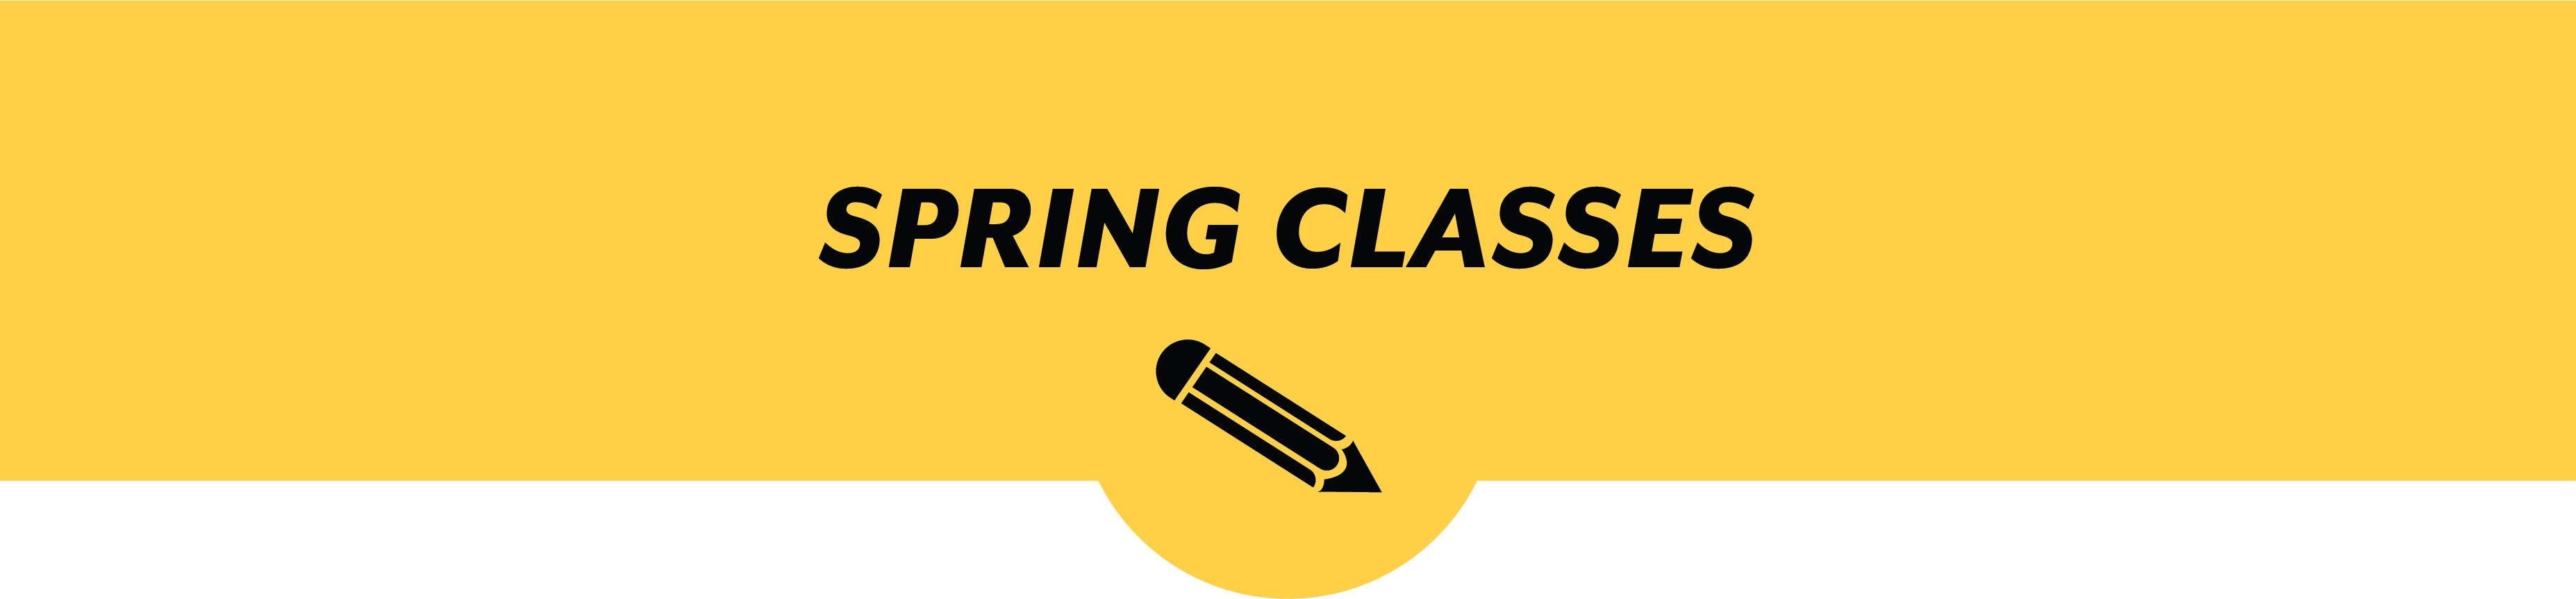 Spring Classes Banner